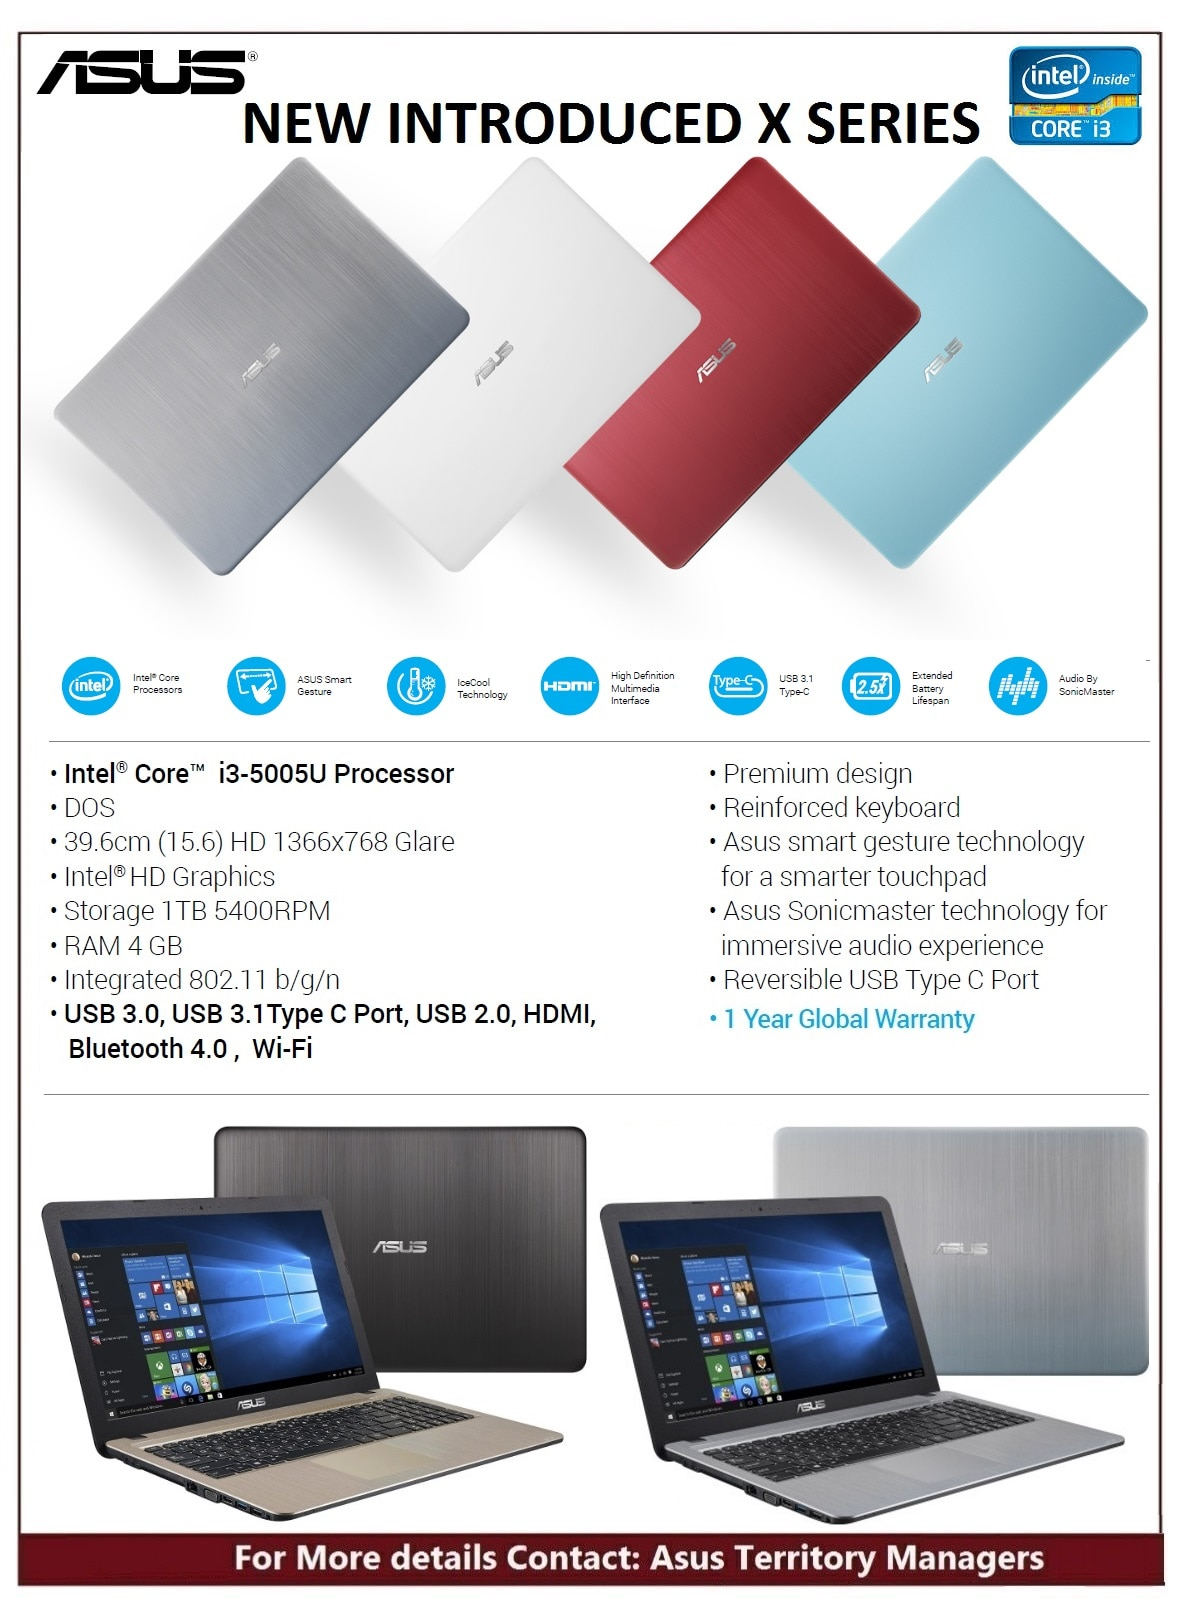 Asus x540 .. New series of Laptop ..with USB 3.1 Type C Port & color Option - 1 year Global Warranty ..  @sonexcomputers 9376 480305